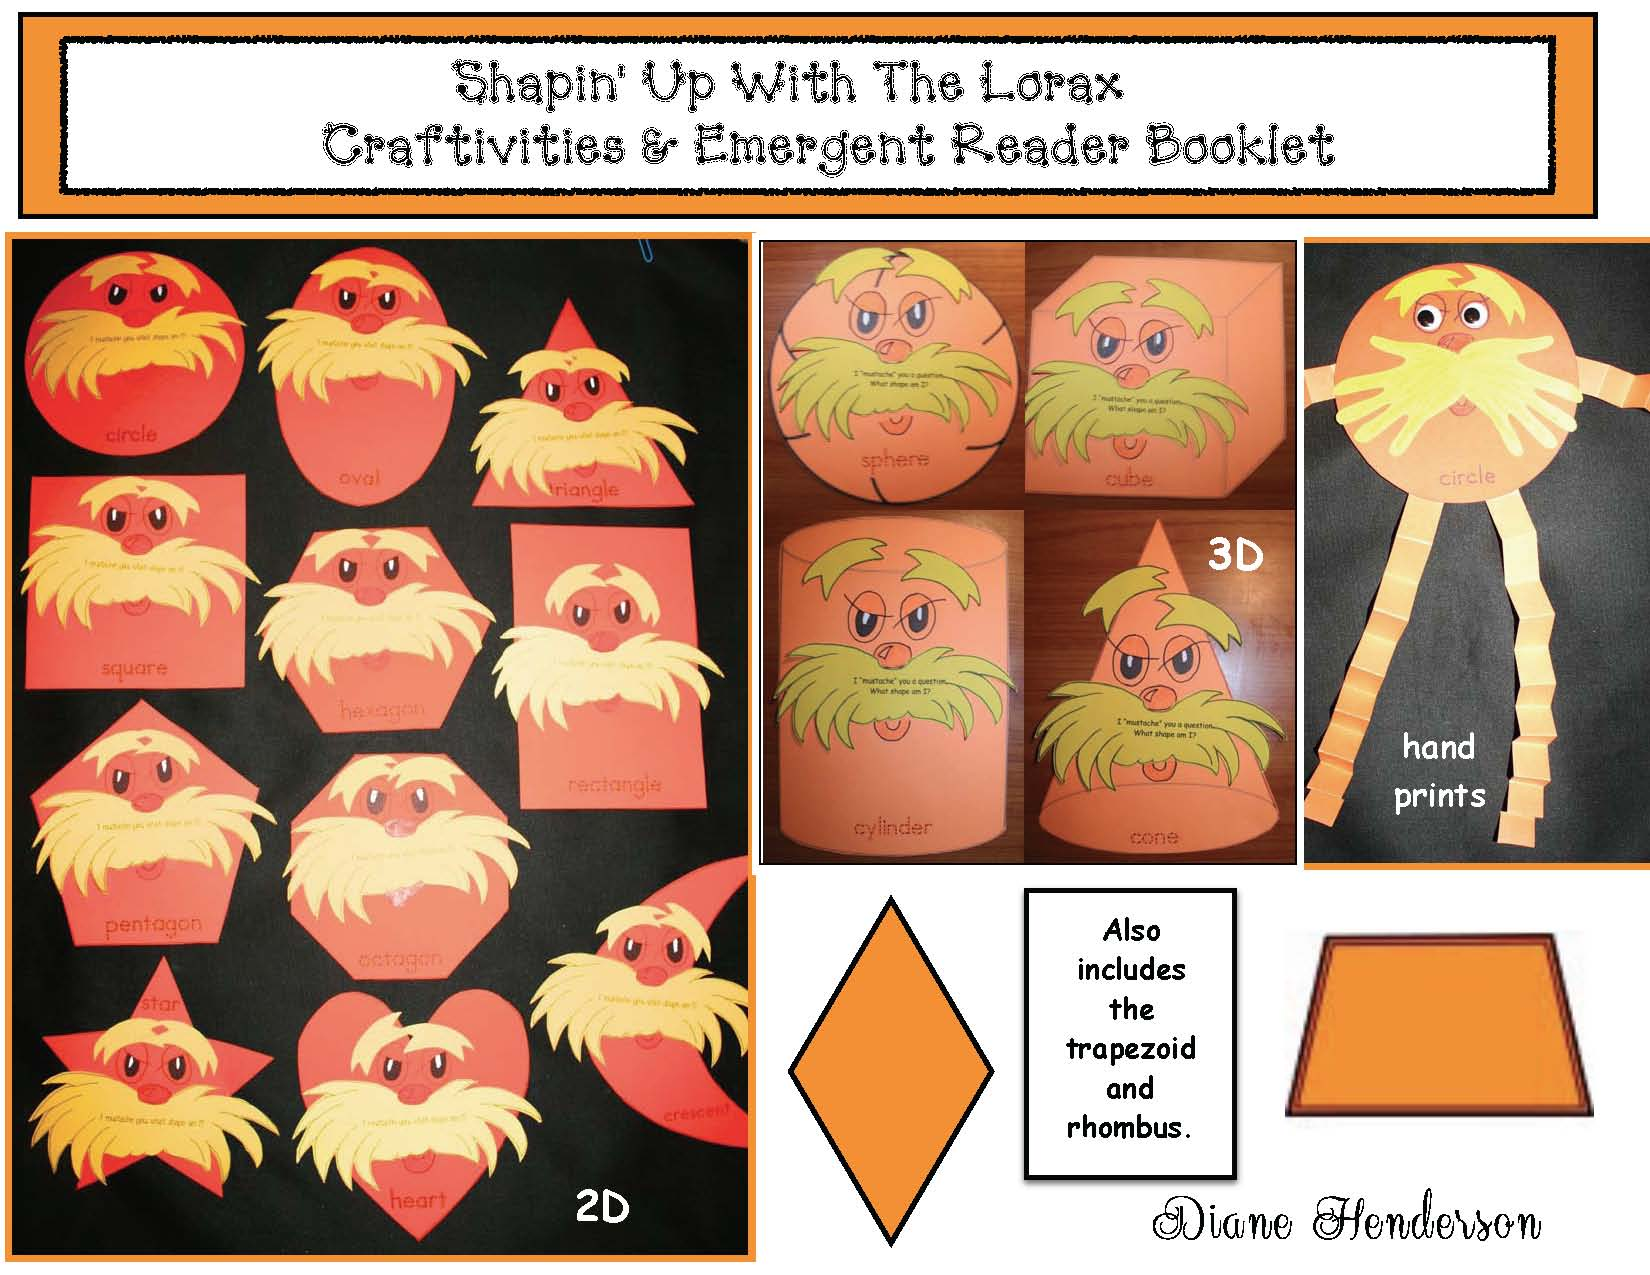 Seuss activities, seuss crafts, seuss centers, seuss games, 2D shape activities 3D shape activities, shape games, shape crafts, shape activities, telling time to the hour activities, Lorax activities, telling time to the hour games